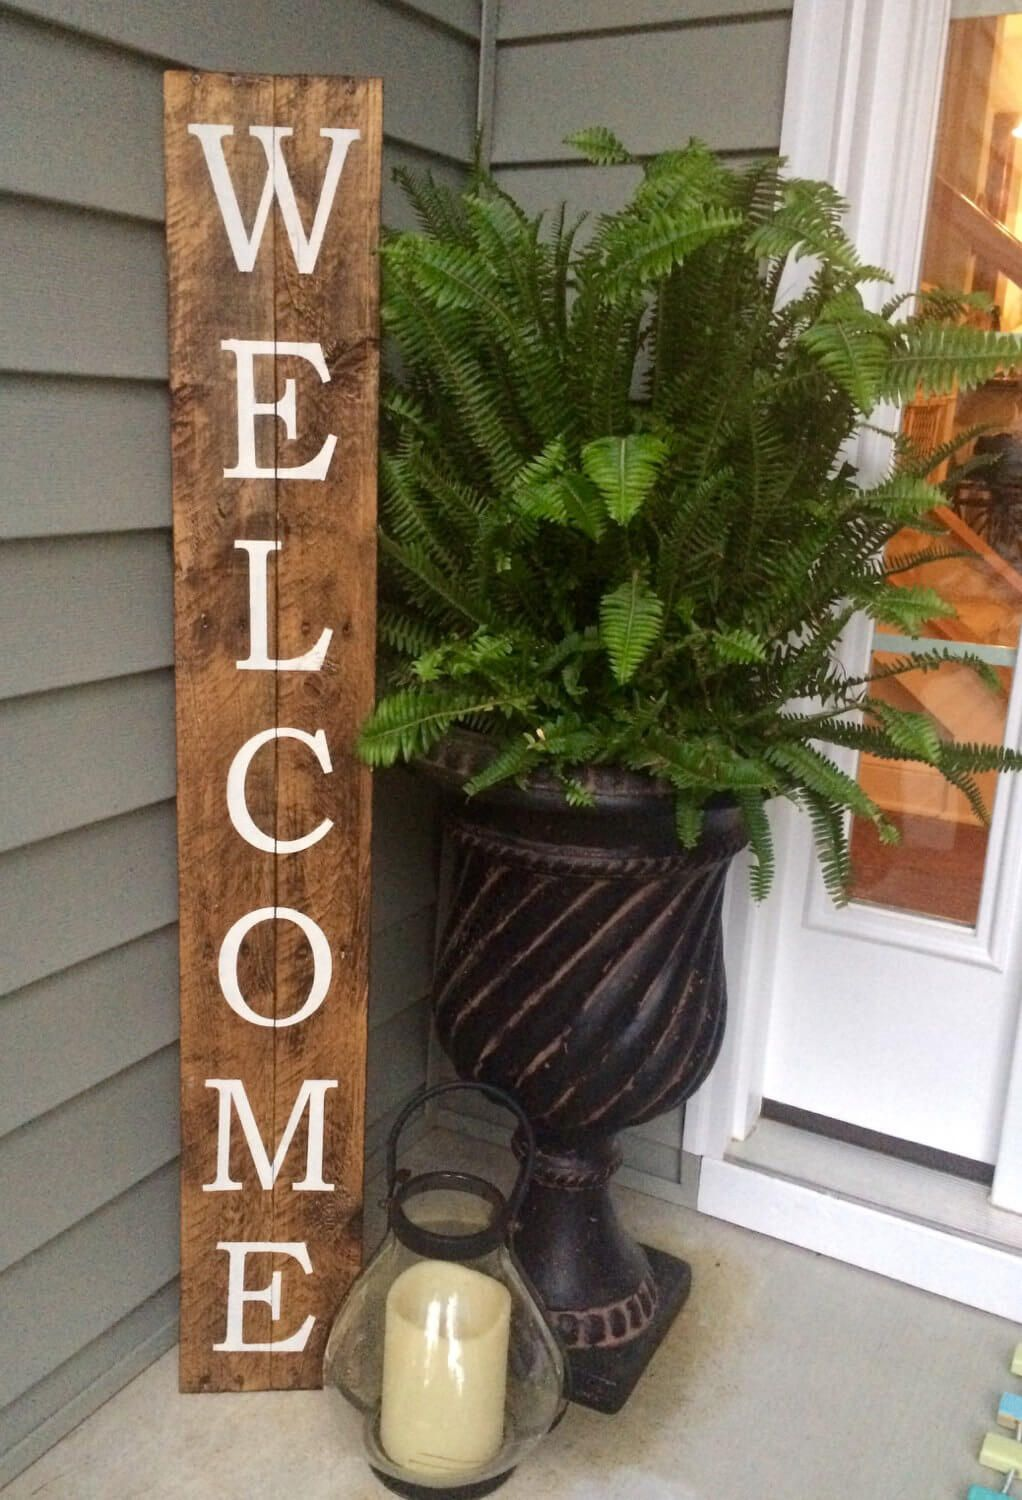 Porch signs welcome my porch barn wood quot what happens on the porch - 47 Rustic Farmhouse Porch Decor Ideas To Show Off This Season